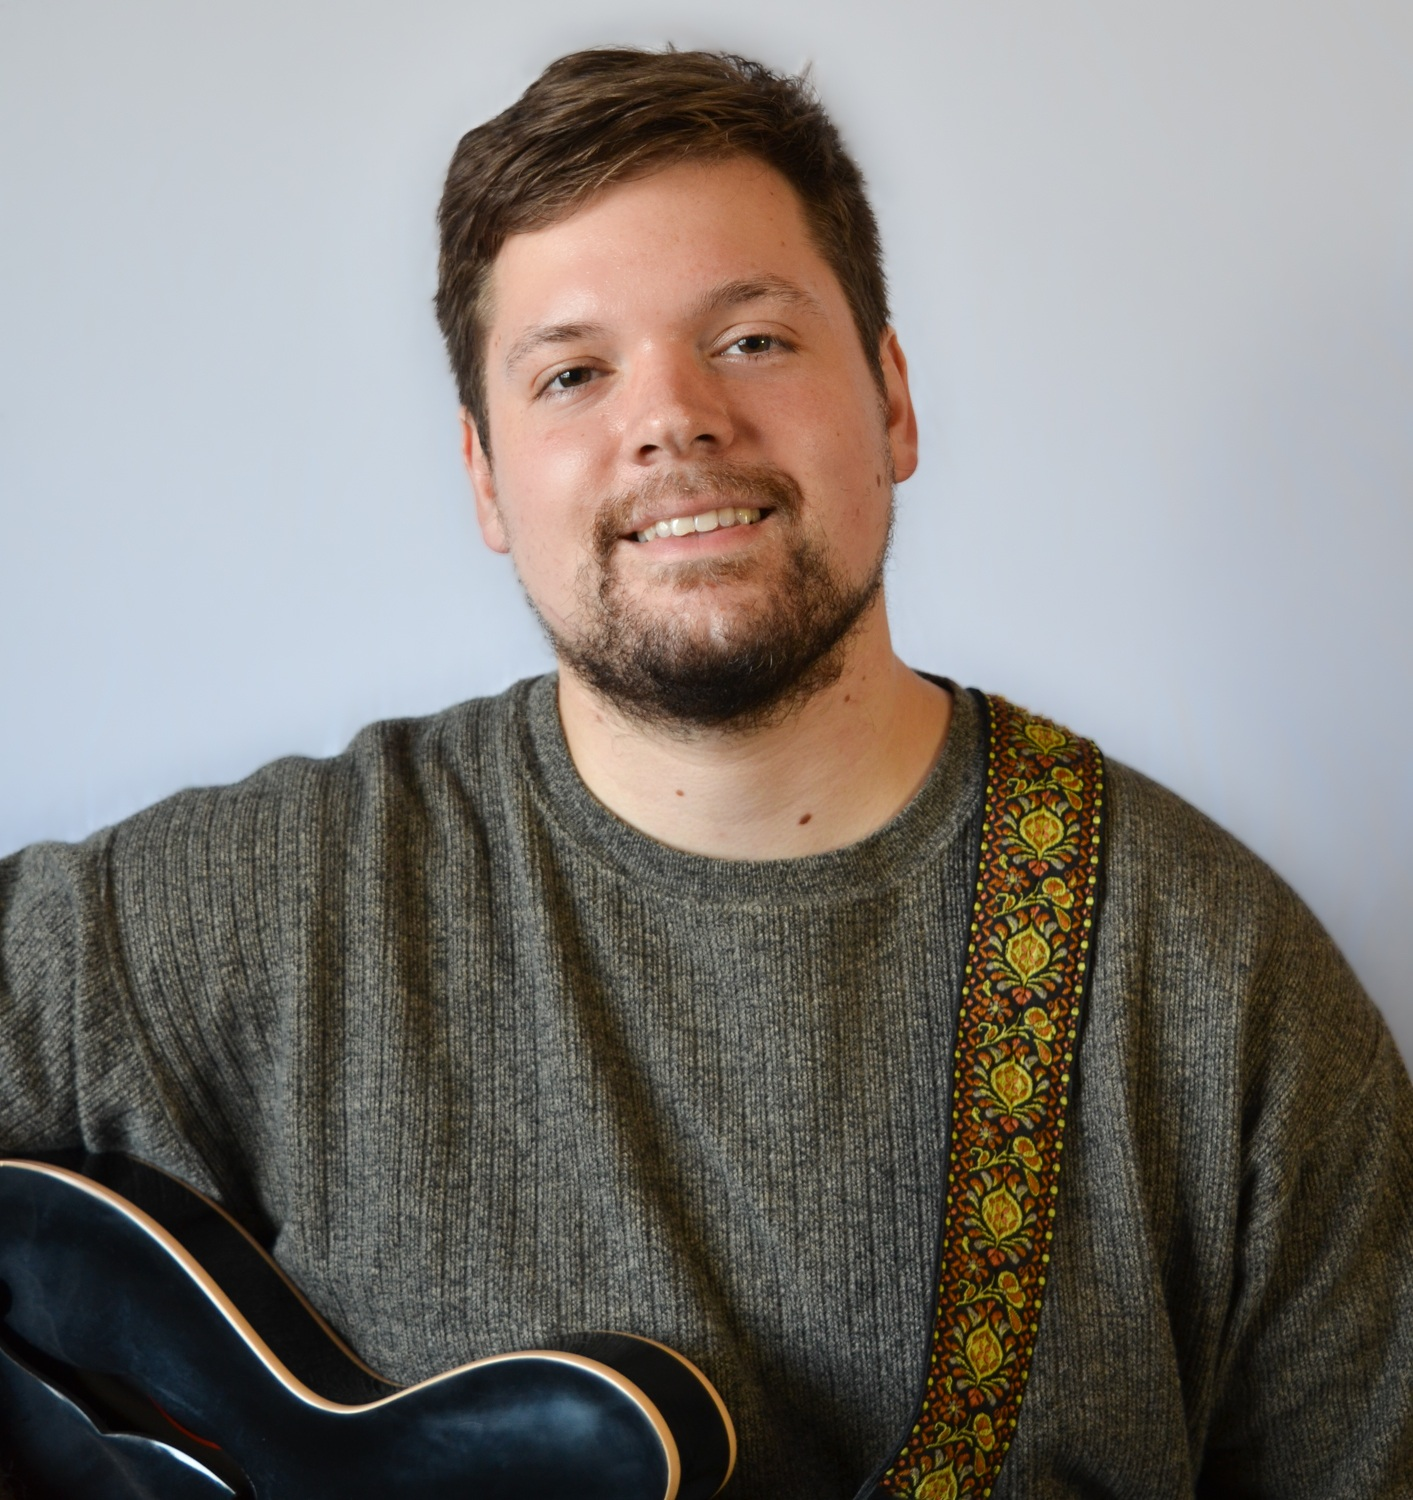 JOHN KARKOSIAK, GUITAR   John Karkosiak has his Bachelor's of Music in Guitar from the Jackie McClean Institute at the Hartt School of Music, Univerity of Hartford, where he studied under hard bop style guitarist Richard Goldstein.  Read More